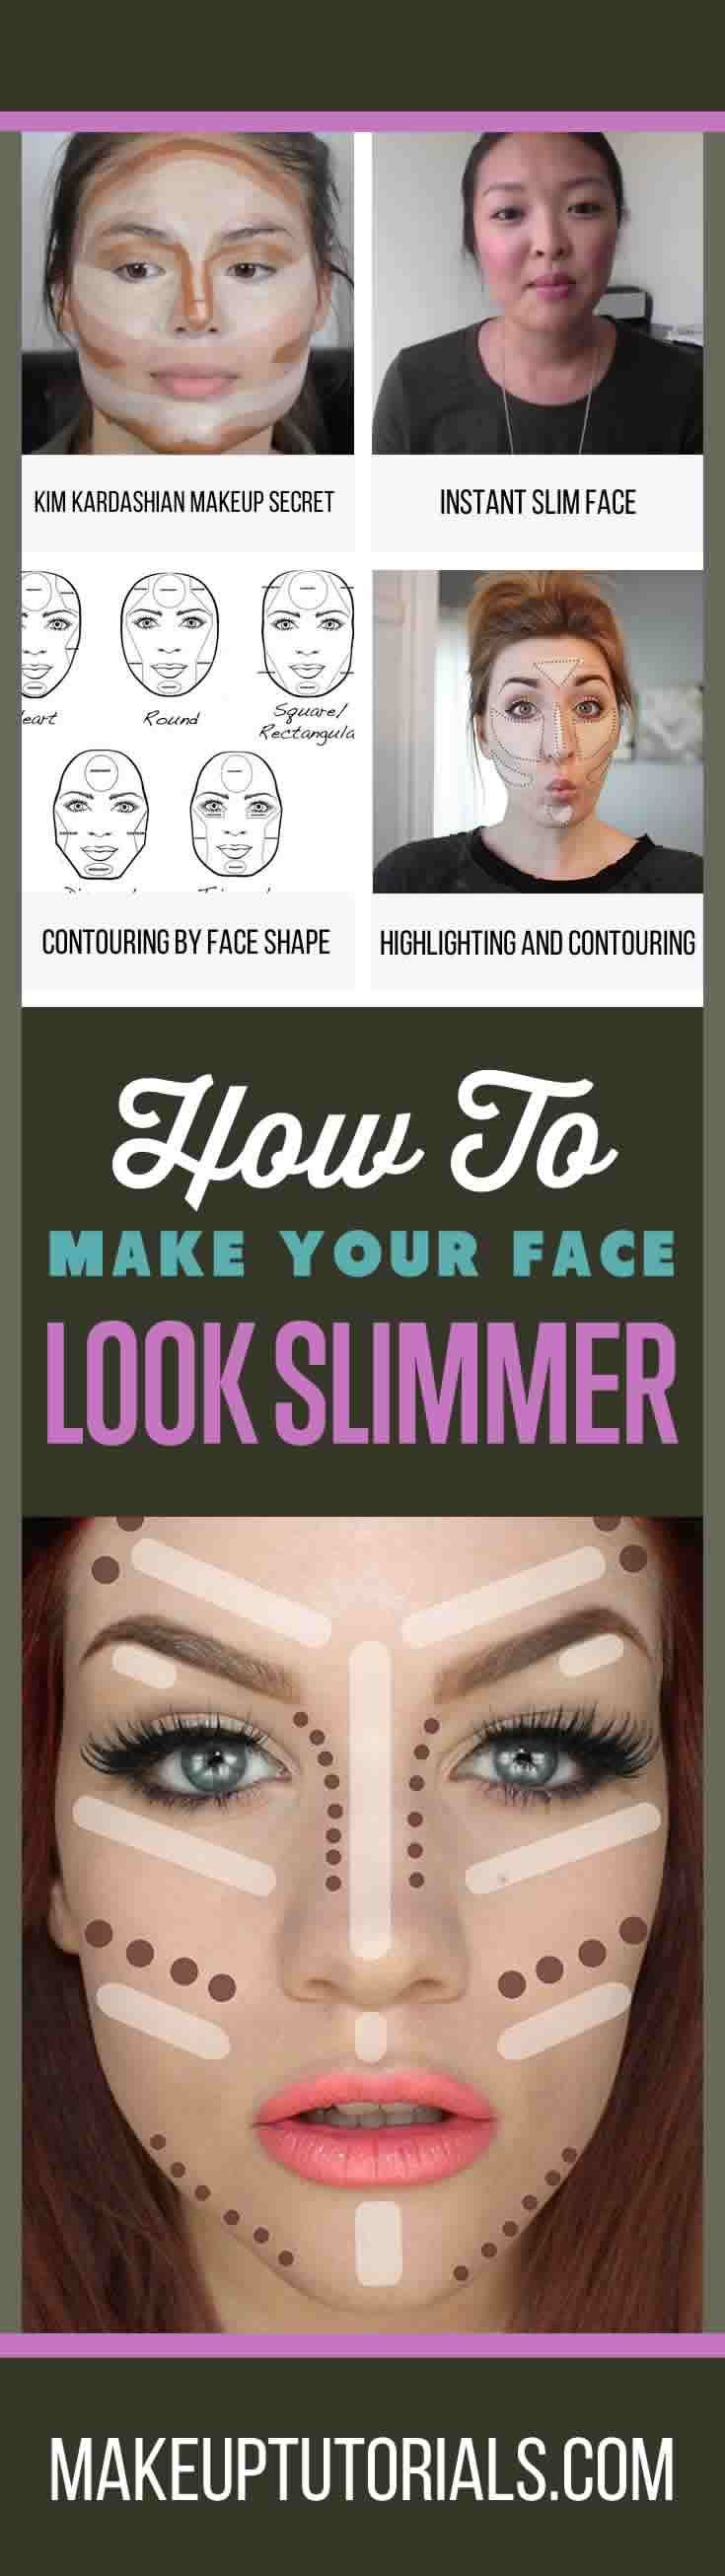 How To Make Your Face Look Slimmer | Easy DIY Tips For Making Your Face Skinnier With Contouring By Makeup Tutorials. http://makeuptutorials.com/5-tutorials-teach-make-face-look-thinner/